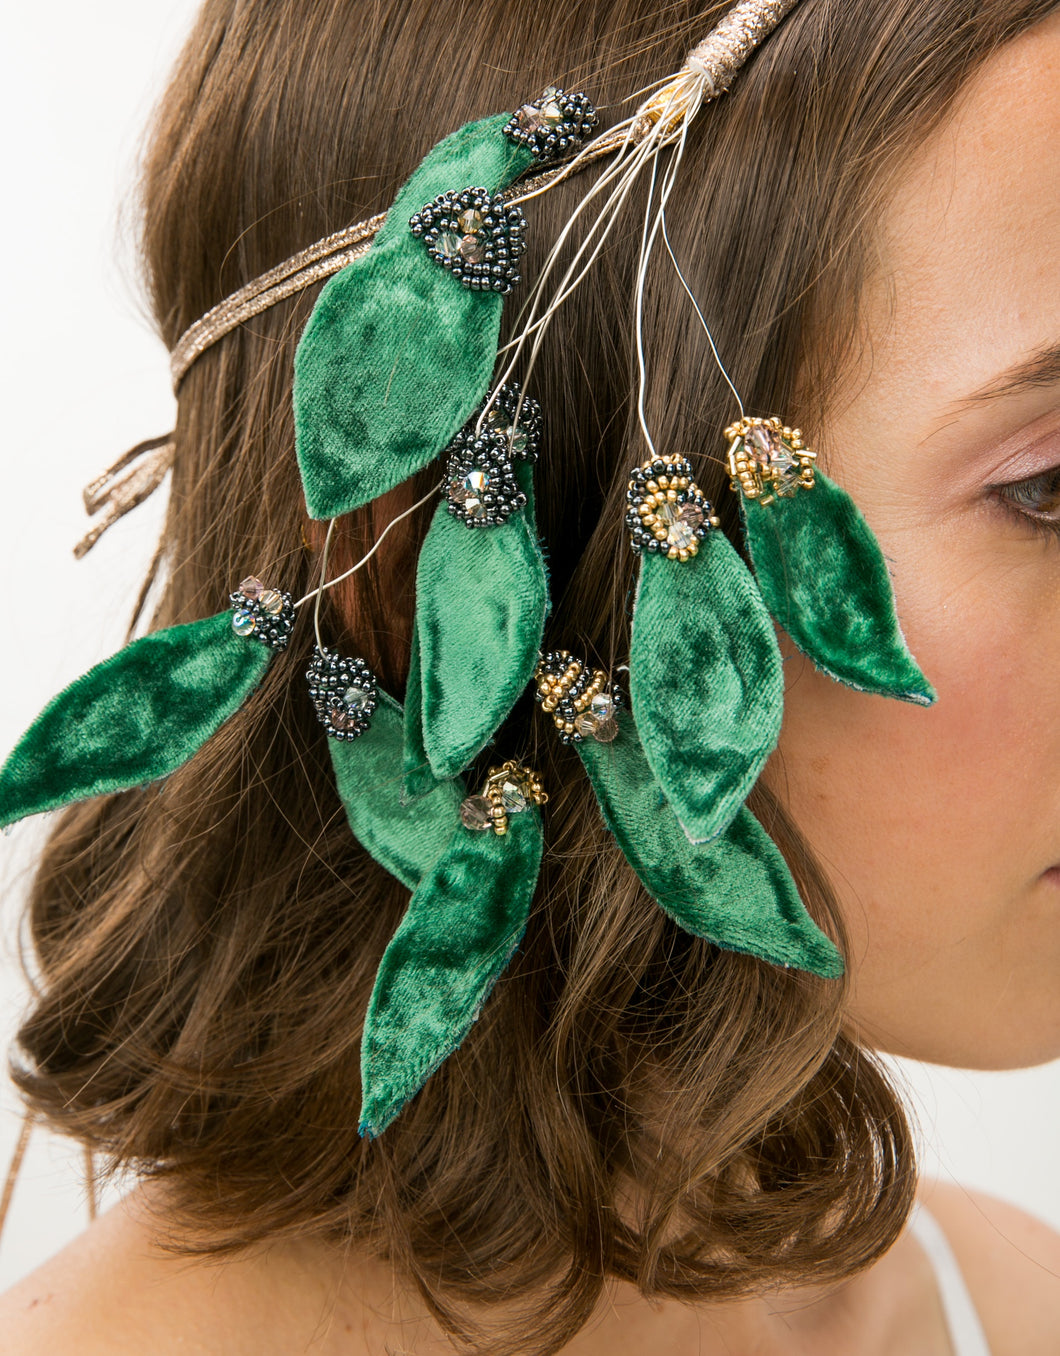 Close up of velvet leaves with bead details on headband